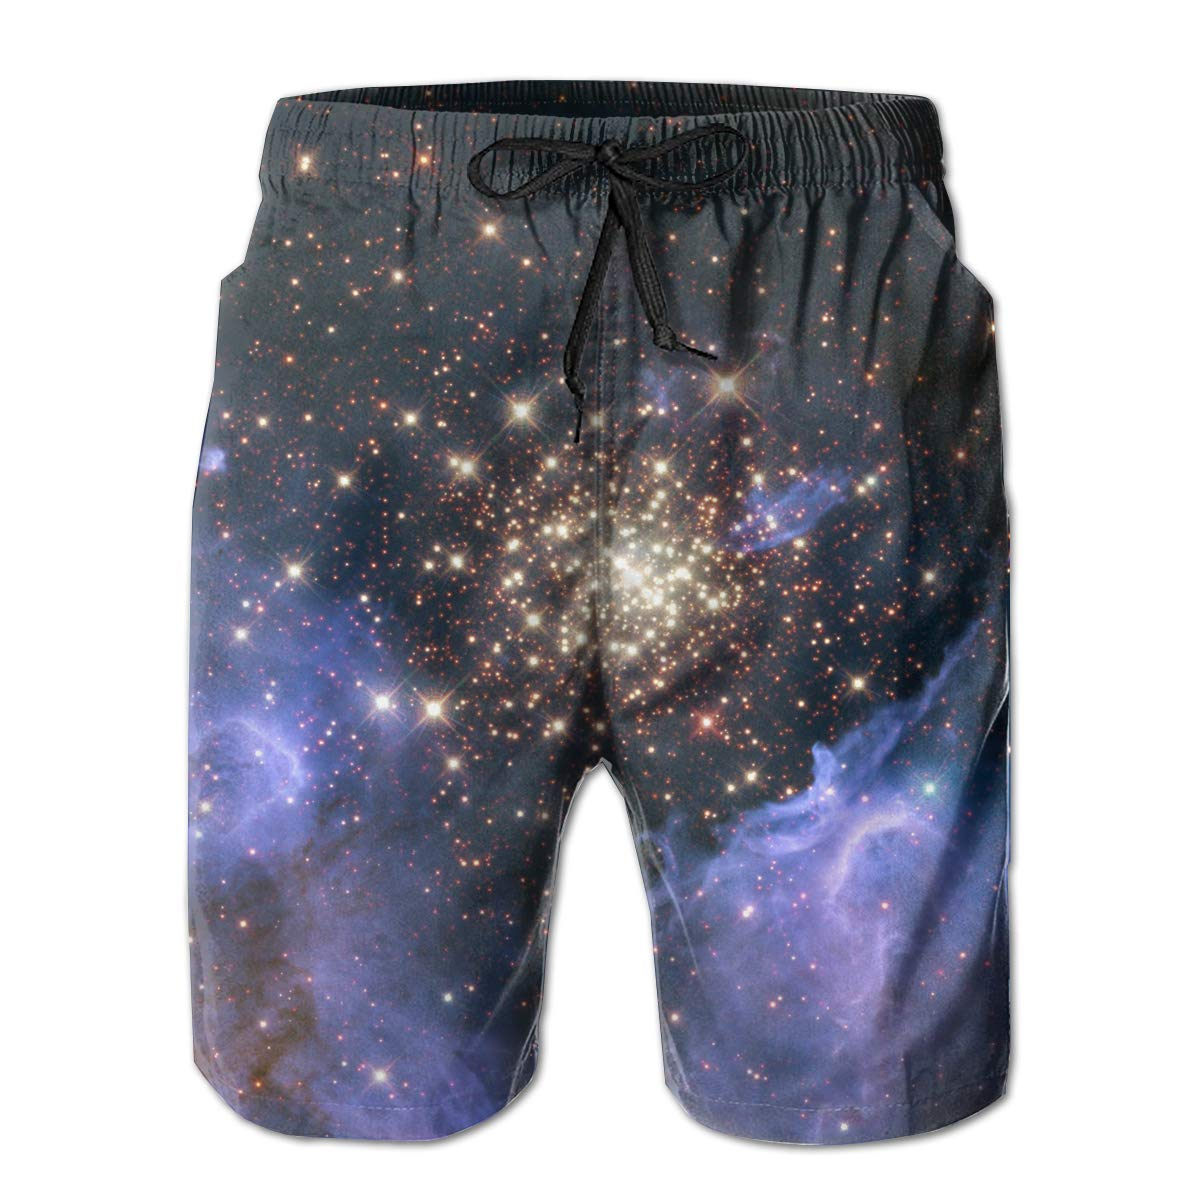 JF-X Celestial Fireworks Mens Summer Beach Surf Board Shorts Quick Dry Swimming Trunks Casual Loose Sleep Short Pants